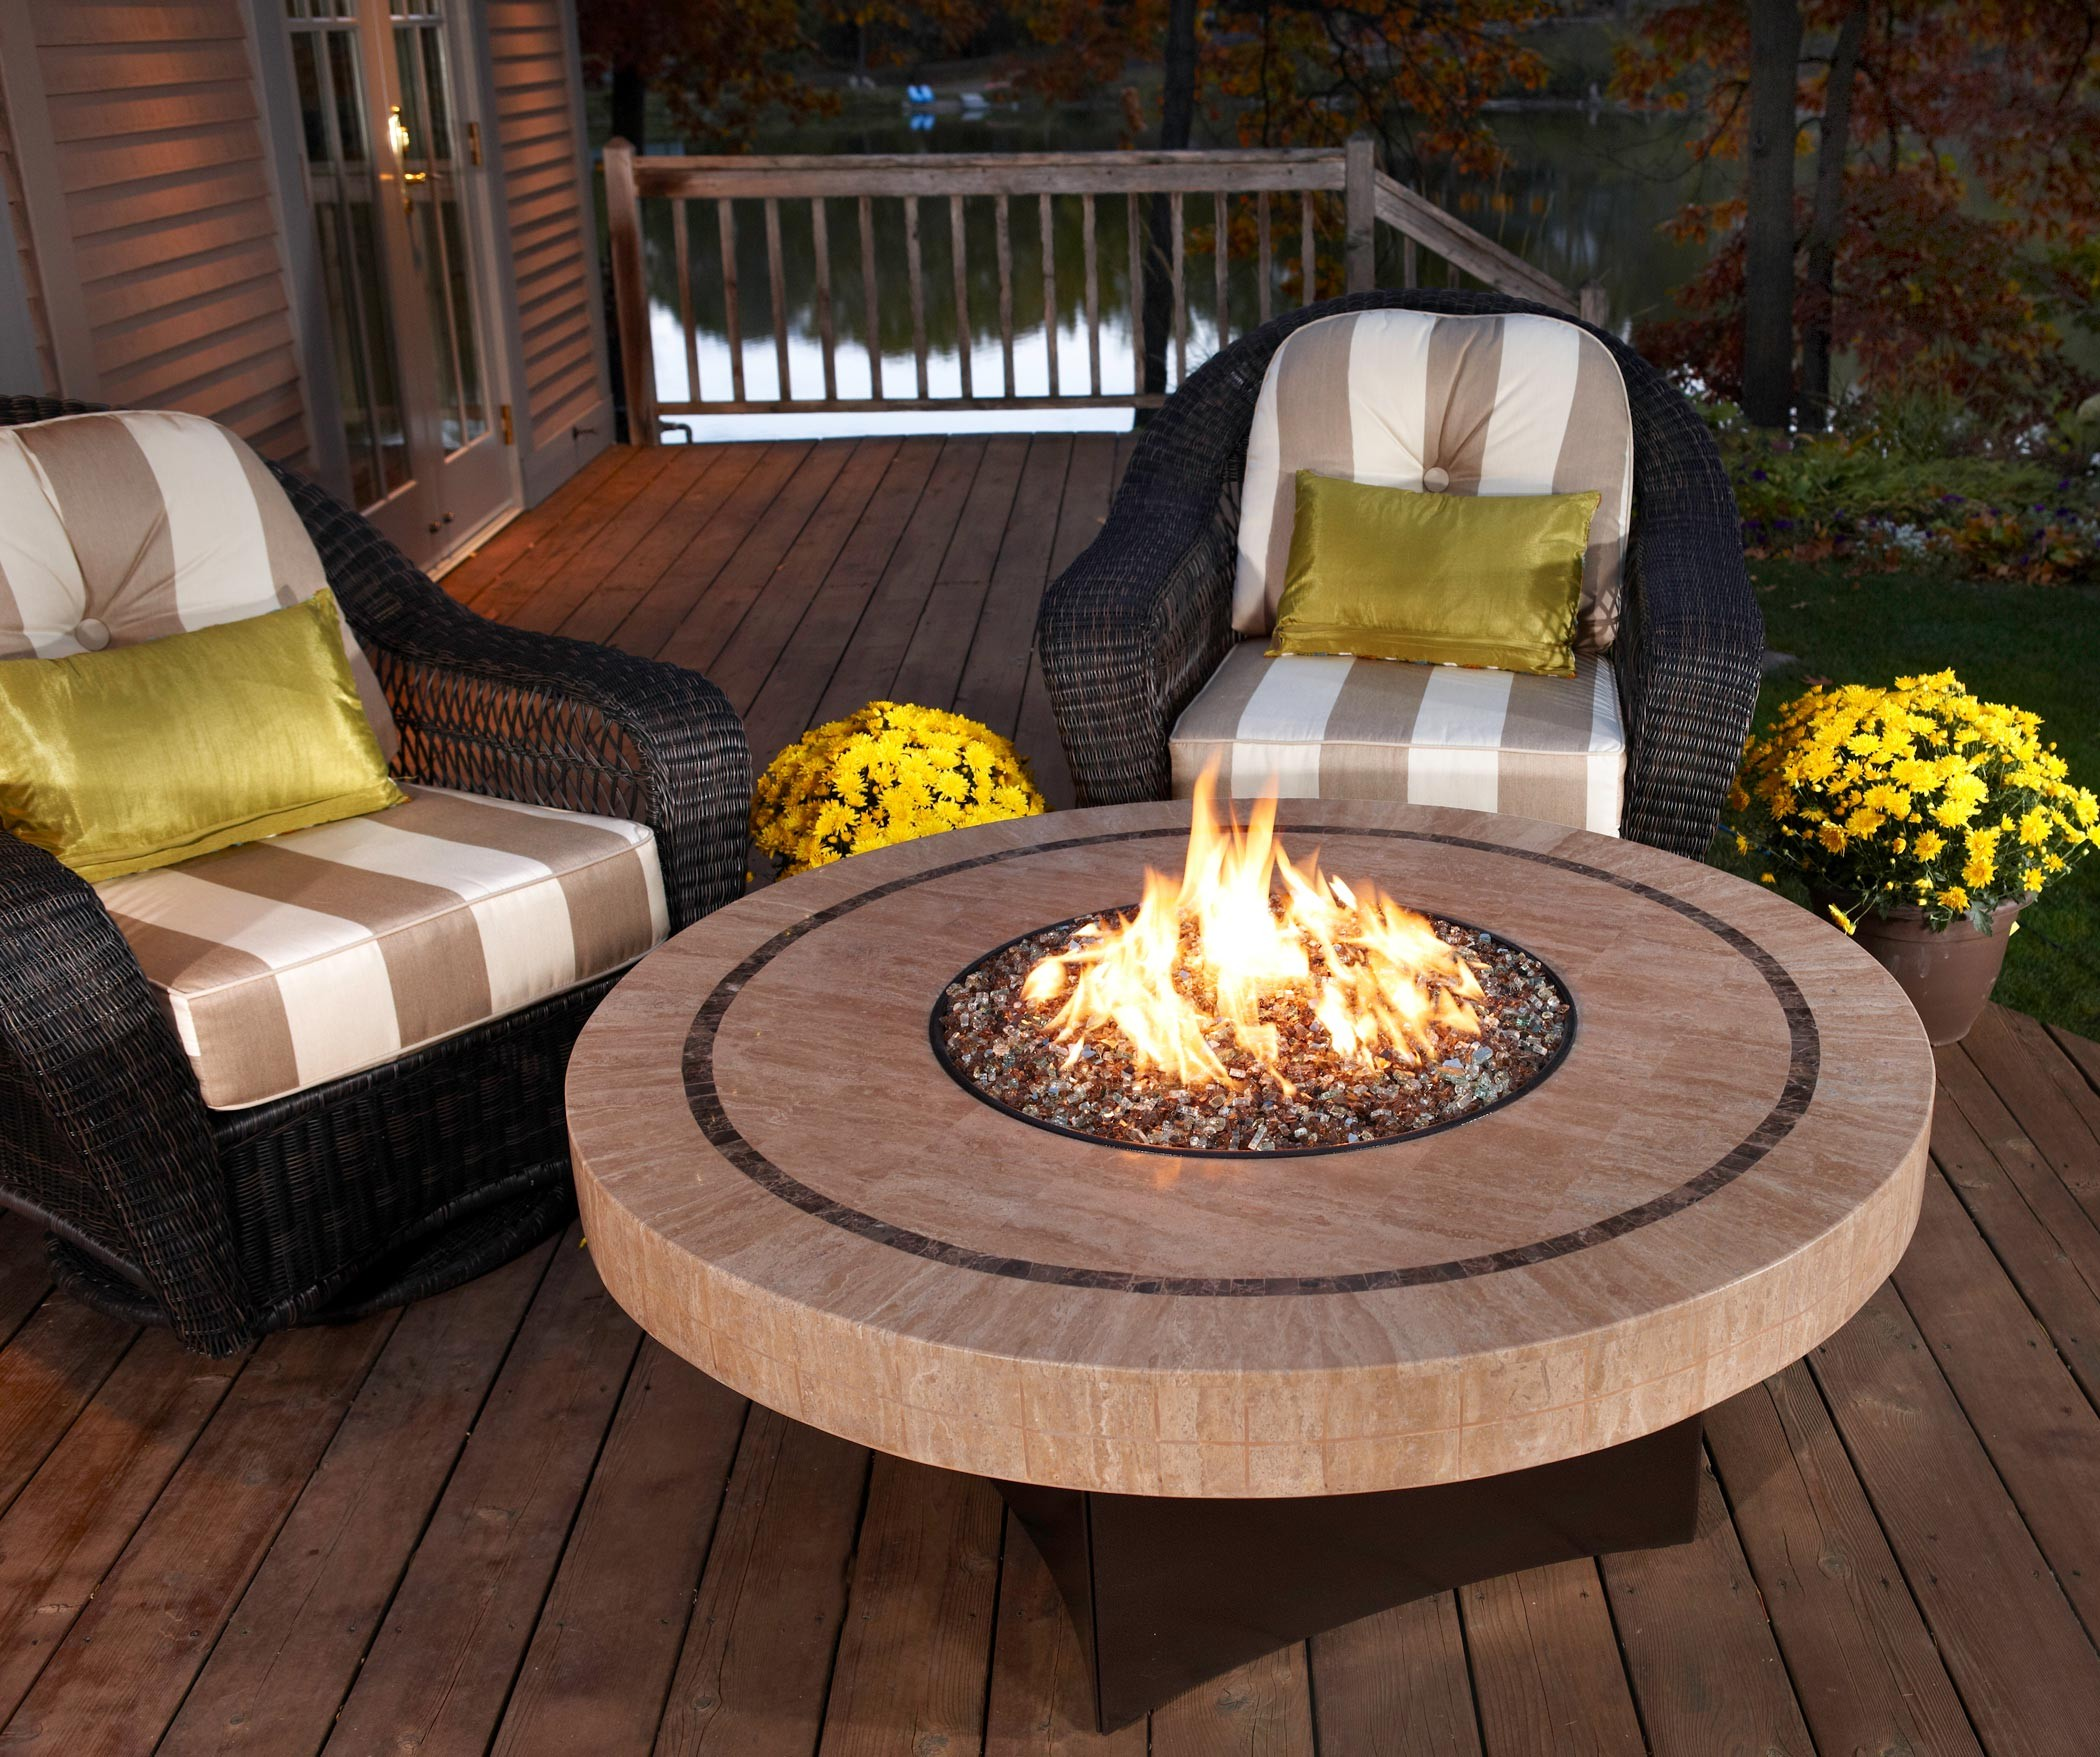 Couchtisch Metal 4 Great Accessories For Your Patio | Ideas 4 Homes